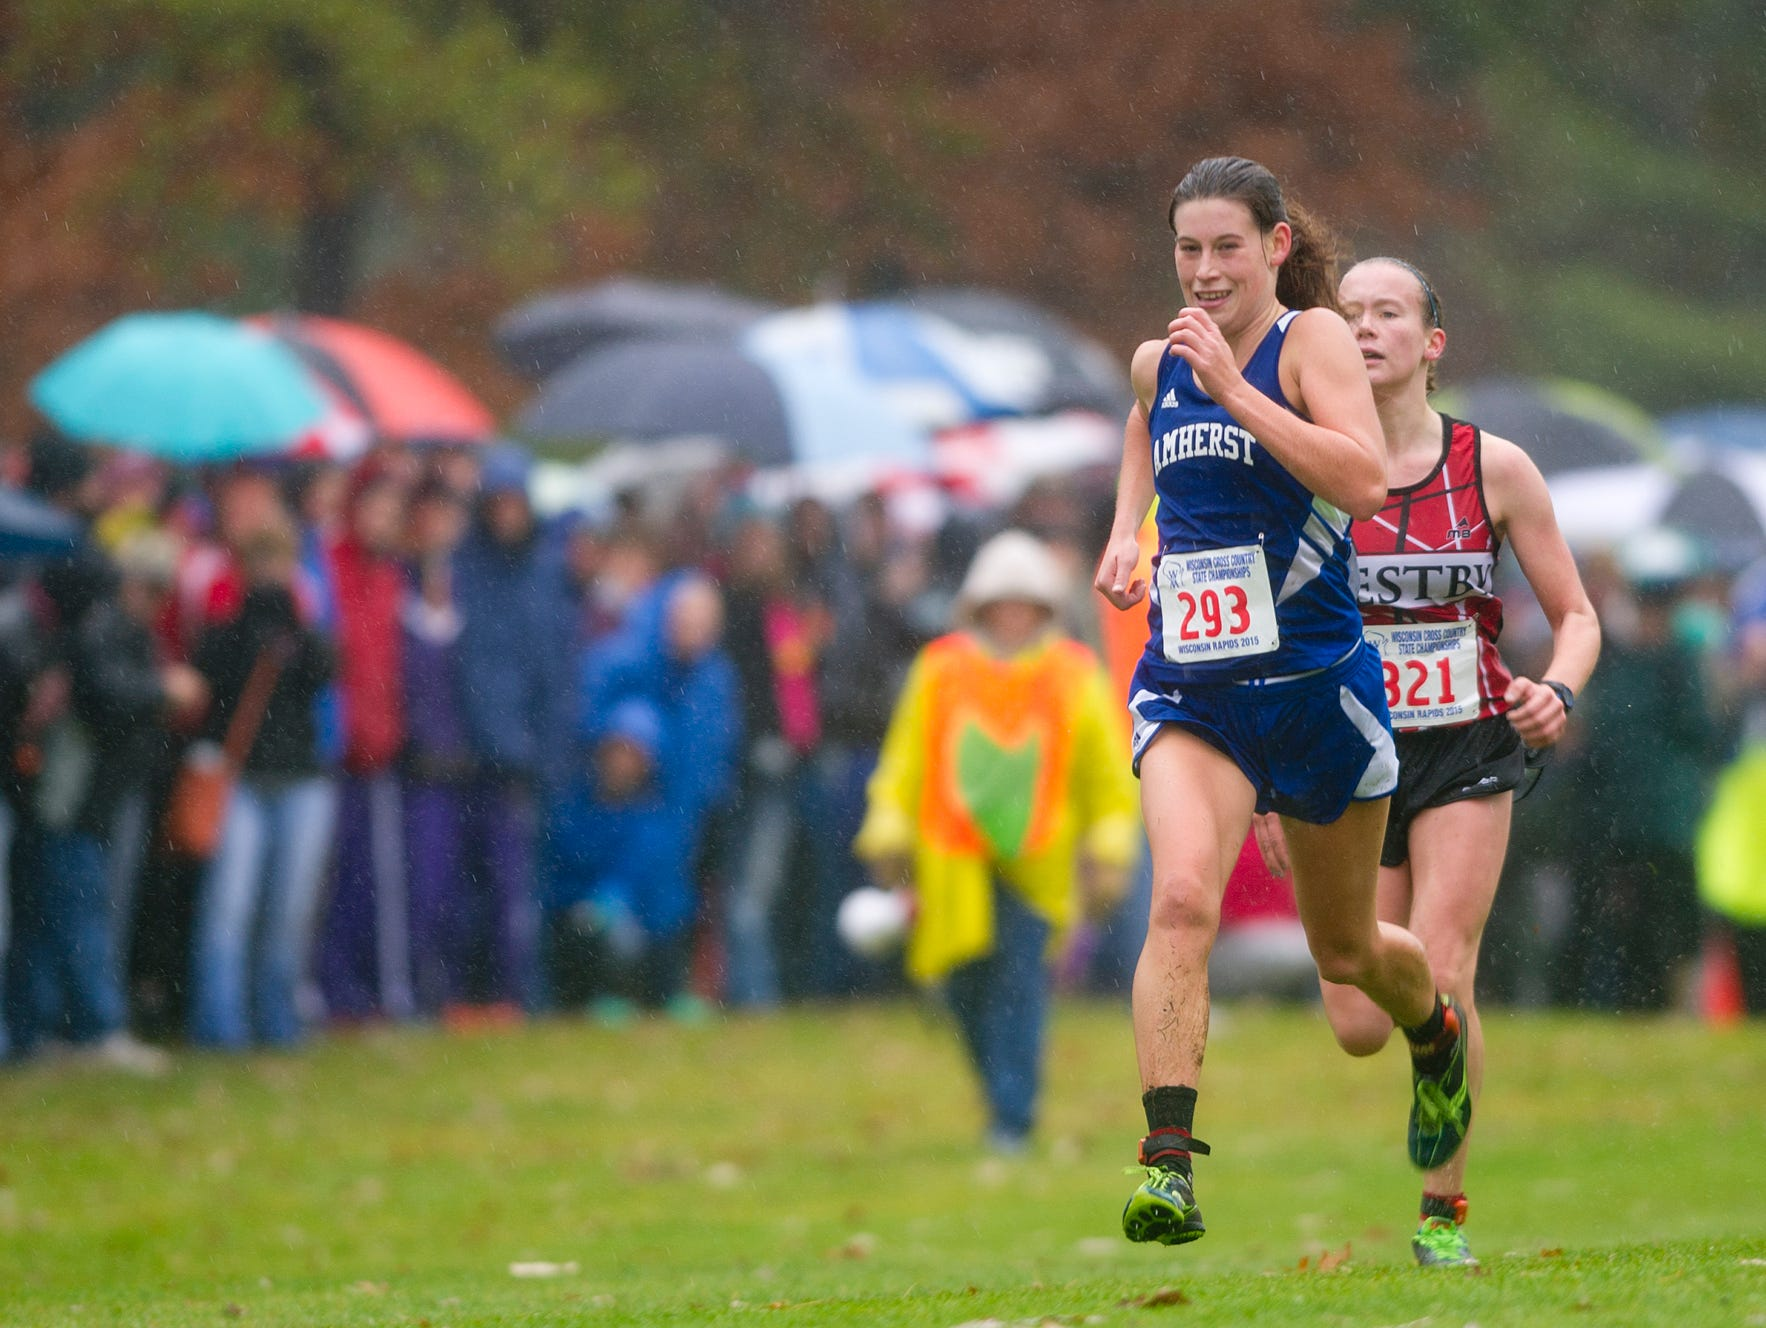 Amherst's Alissa Niggemann, left, races past Westby's Elena Schmidt to the finish line to place first in the Division 3 girls race at the 2015 State Cross Country Championships at the Ridges Country Club in Wisconsin Rapids, Saturday, Oct. 31, 2015.